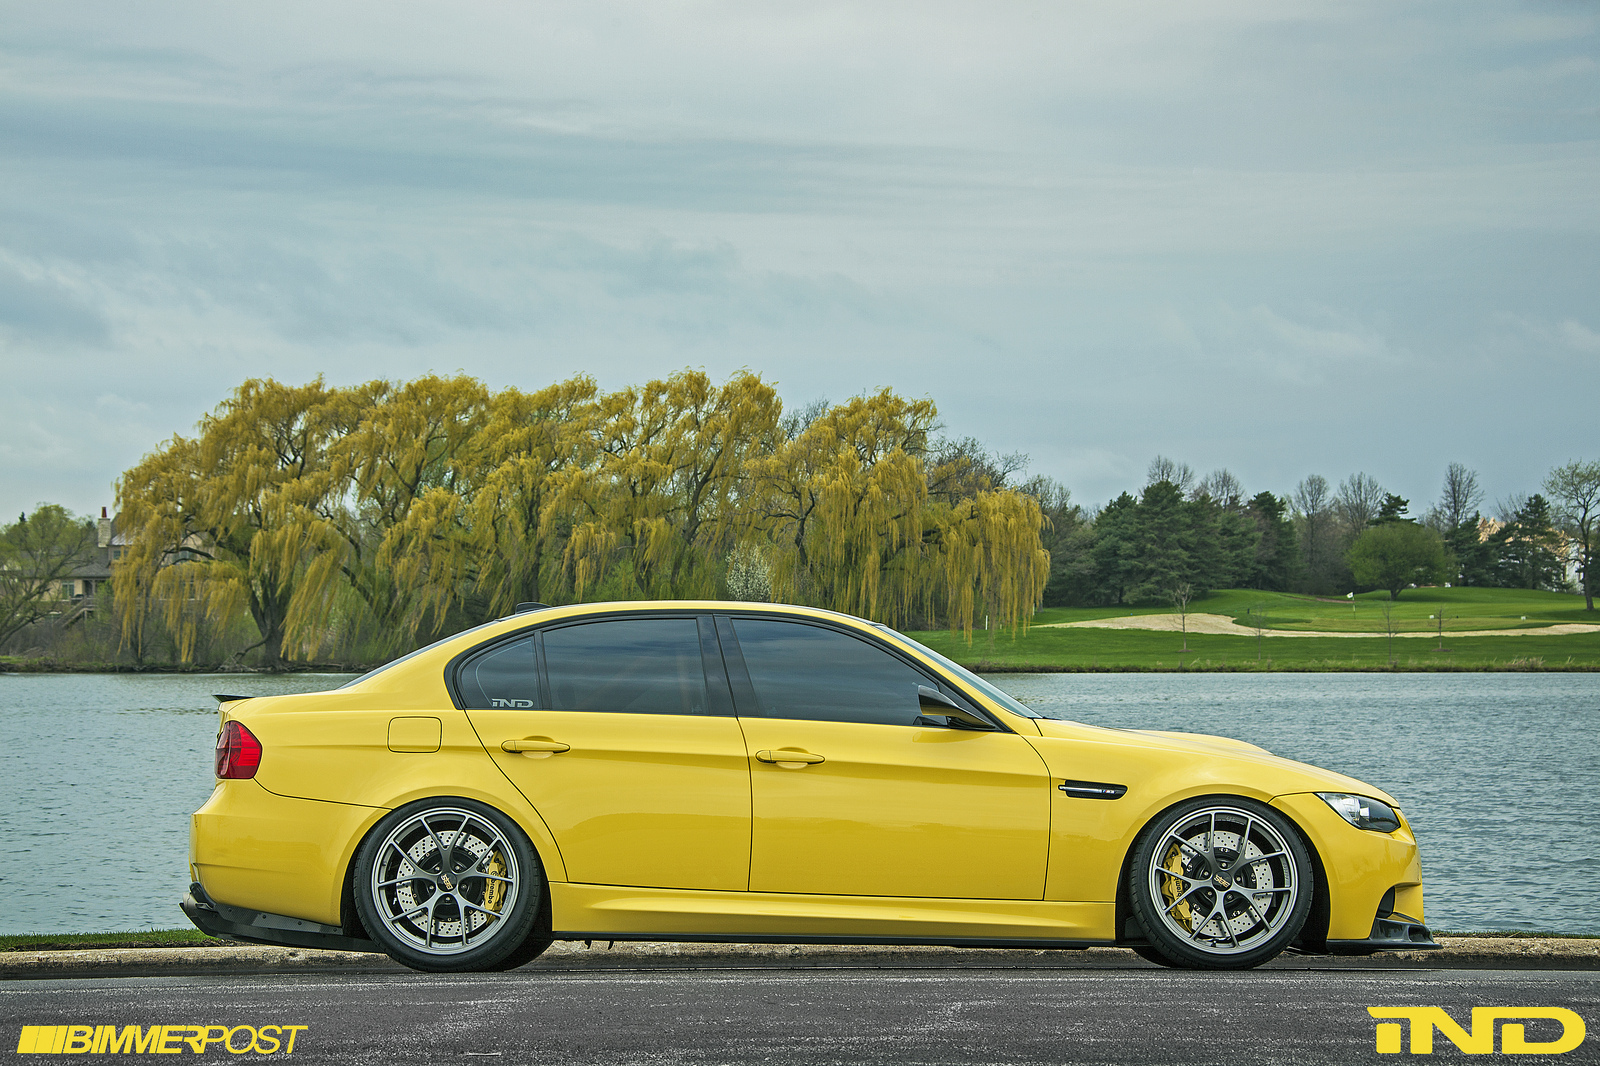 ind presents dakar yellow bmw e90 m3 autoevolution. Black Bedroom Furniture Sets. Home Design Ideas